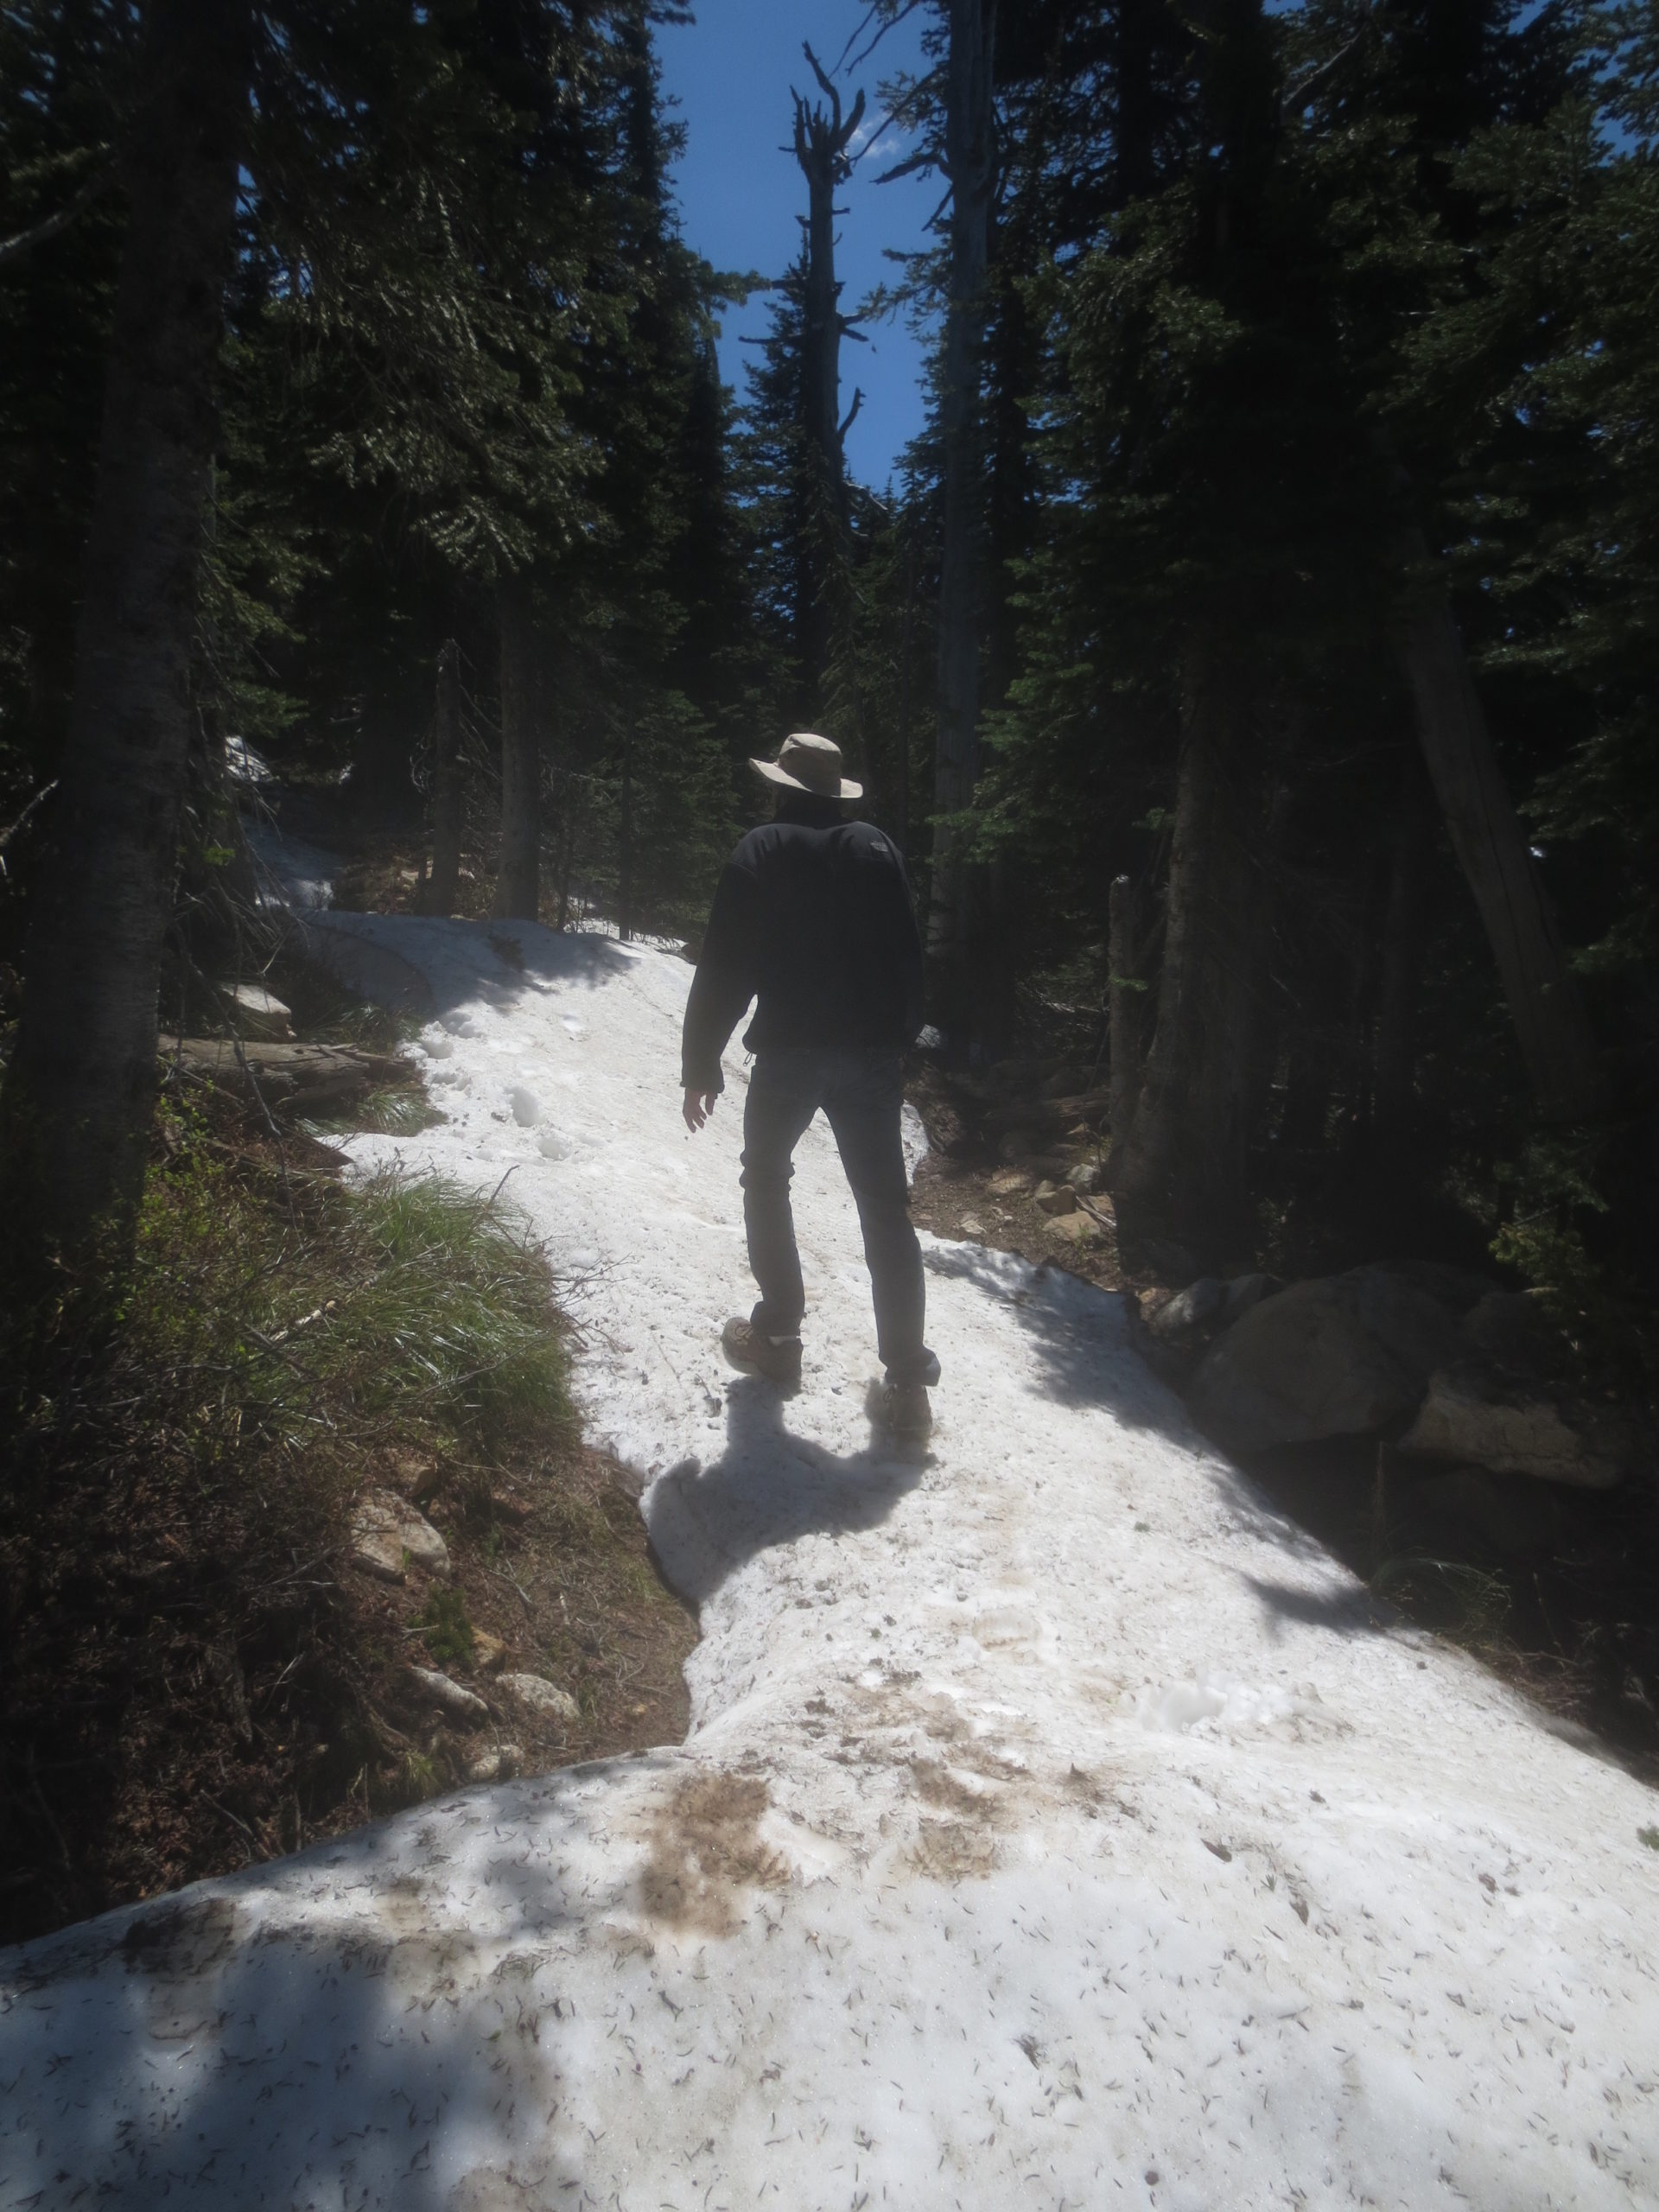 hiking on snow in June